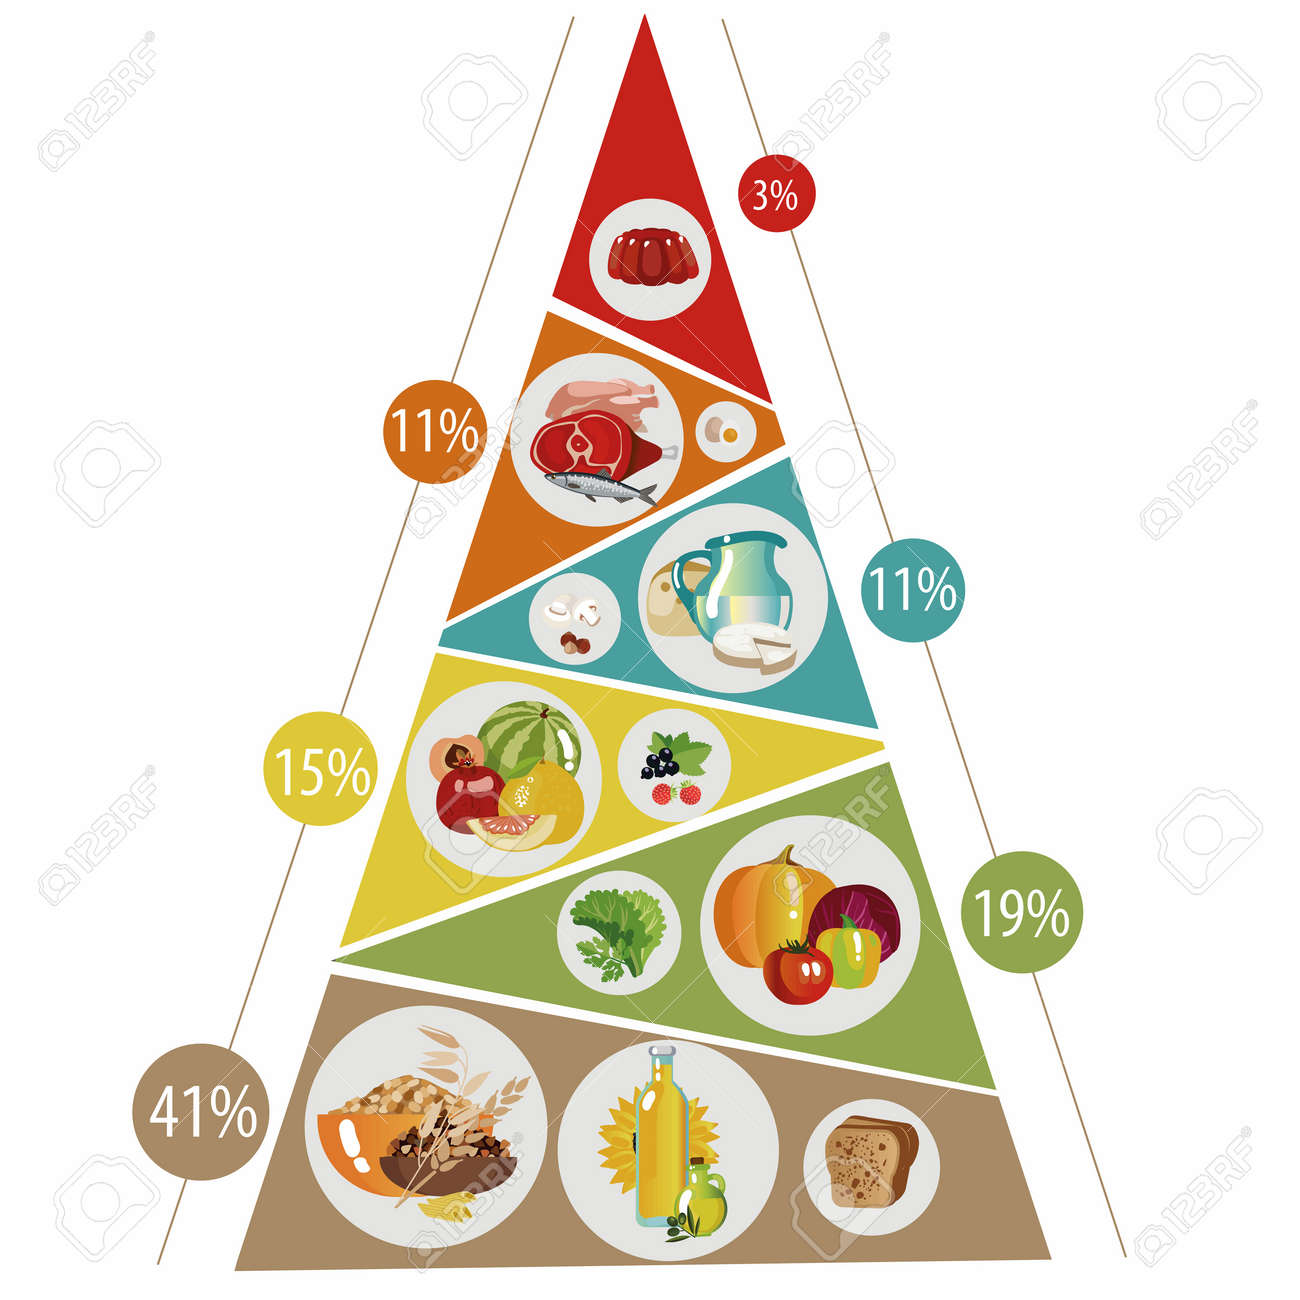 Food Pyramid Consisting Of Healthy Food In Groups With Percentages Royalty Free Cliparts Vectors And Stock Illustration Image 97859728